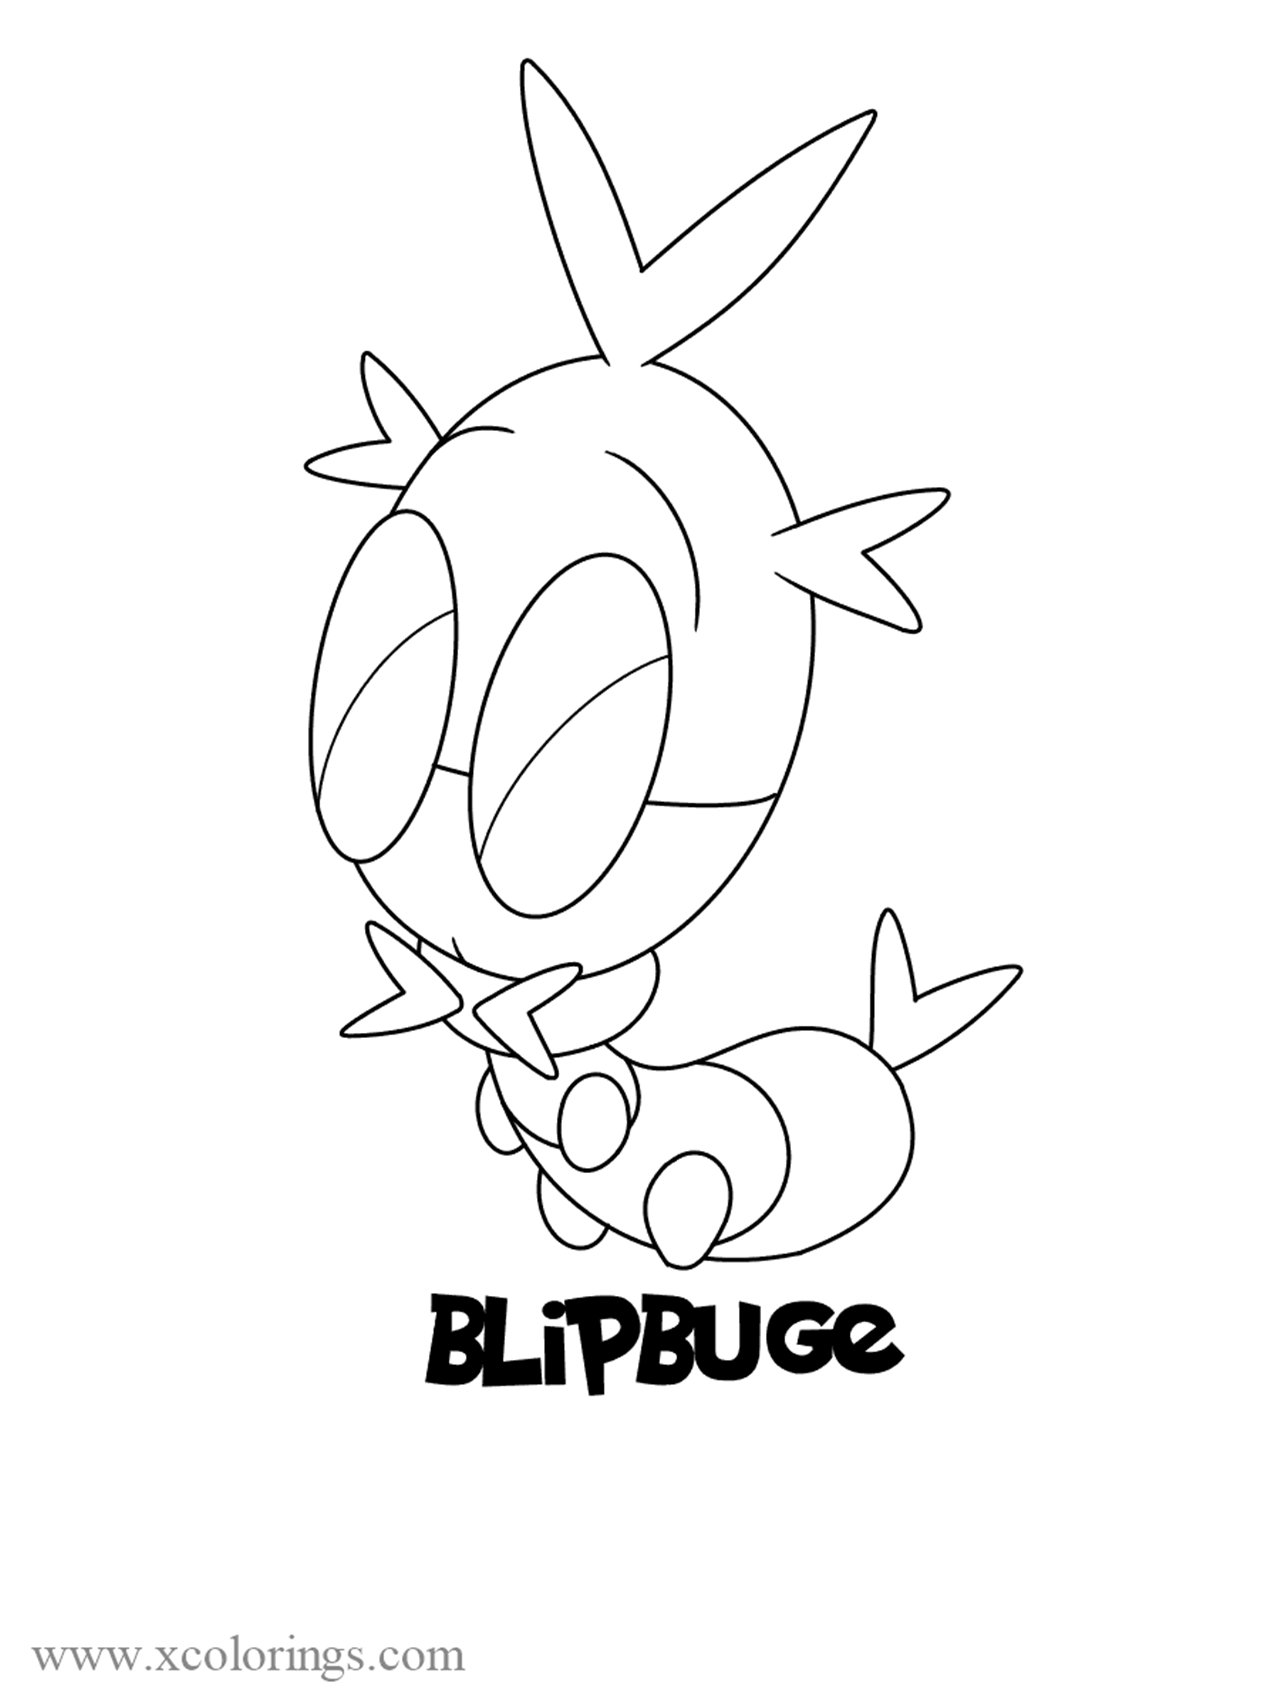 Blipbug From Pokemon Sword And Shield Coloring Pages Xcolorings Com